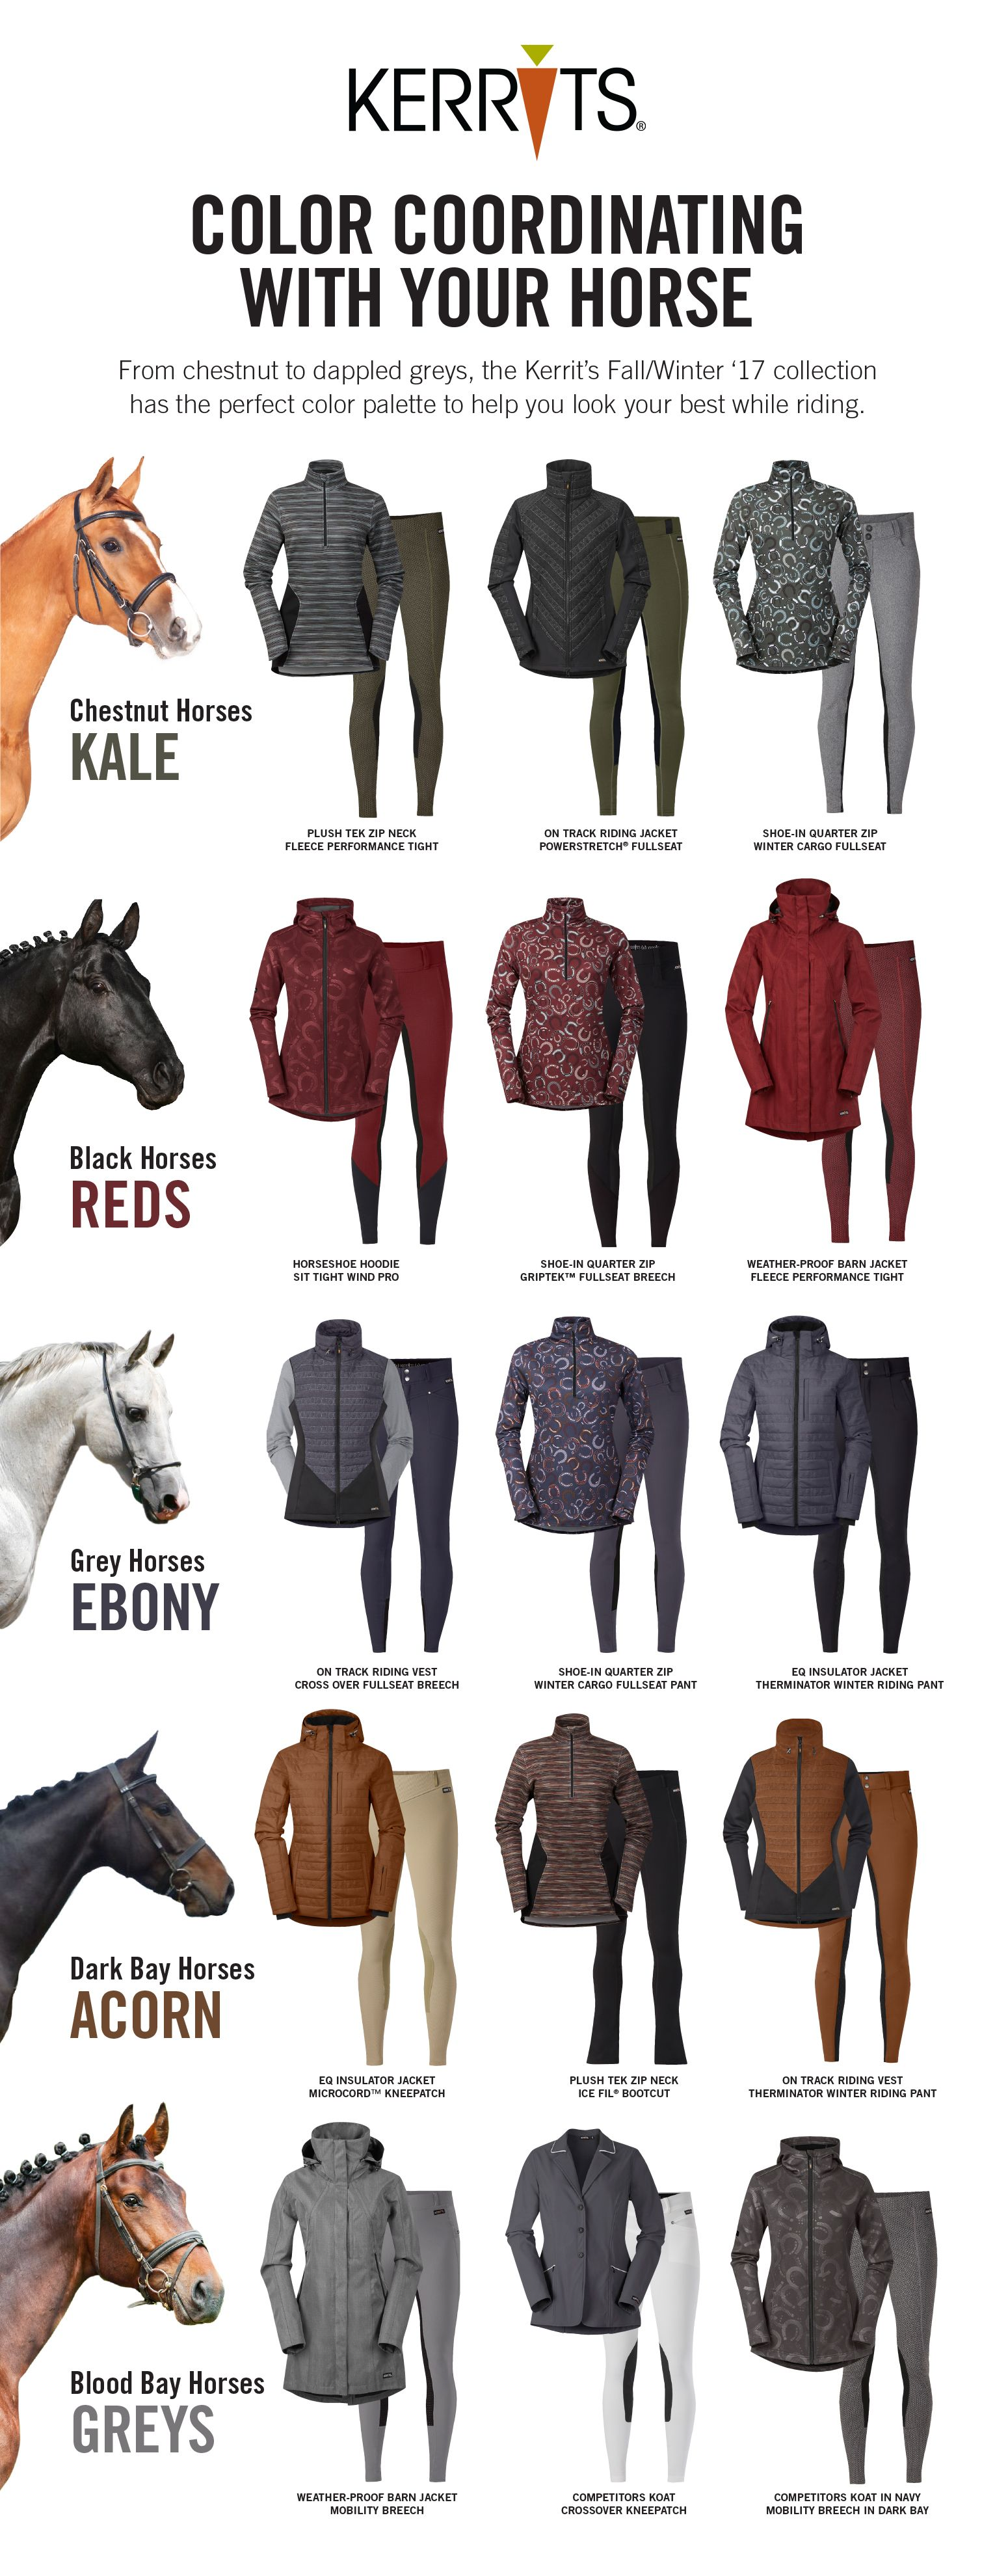 509e315ba8f Color Coordinate with your horse! From Chestnut to Dapple greys, the  Kerrits Fall/